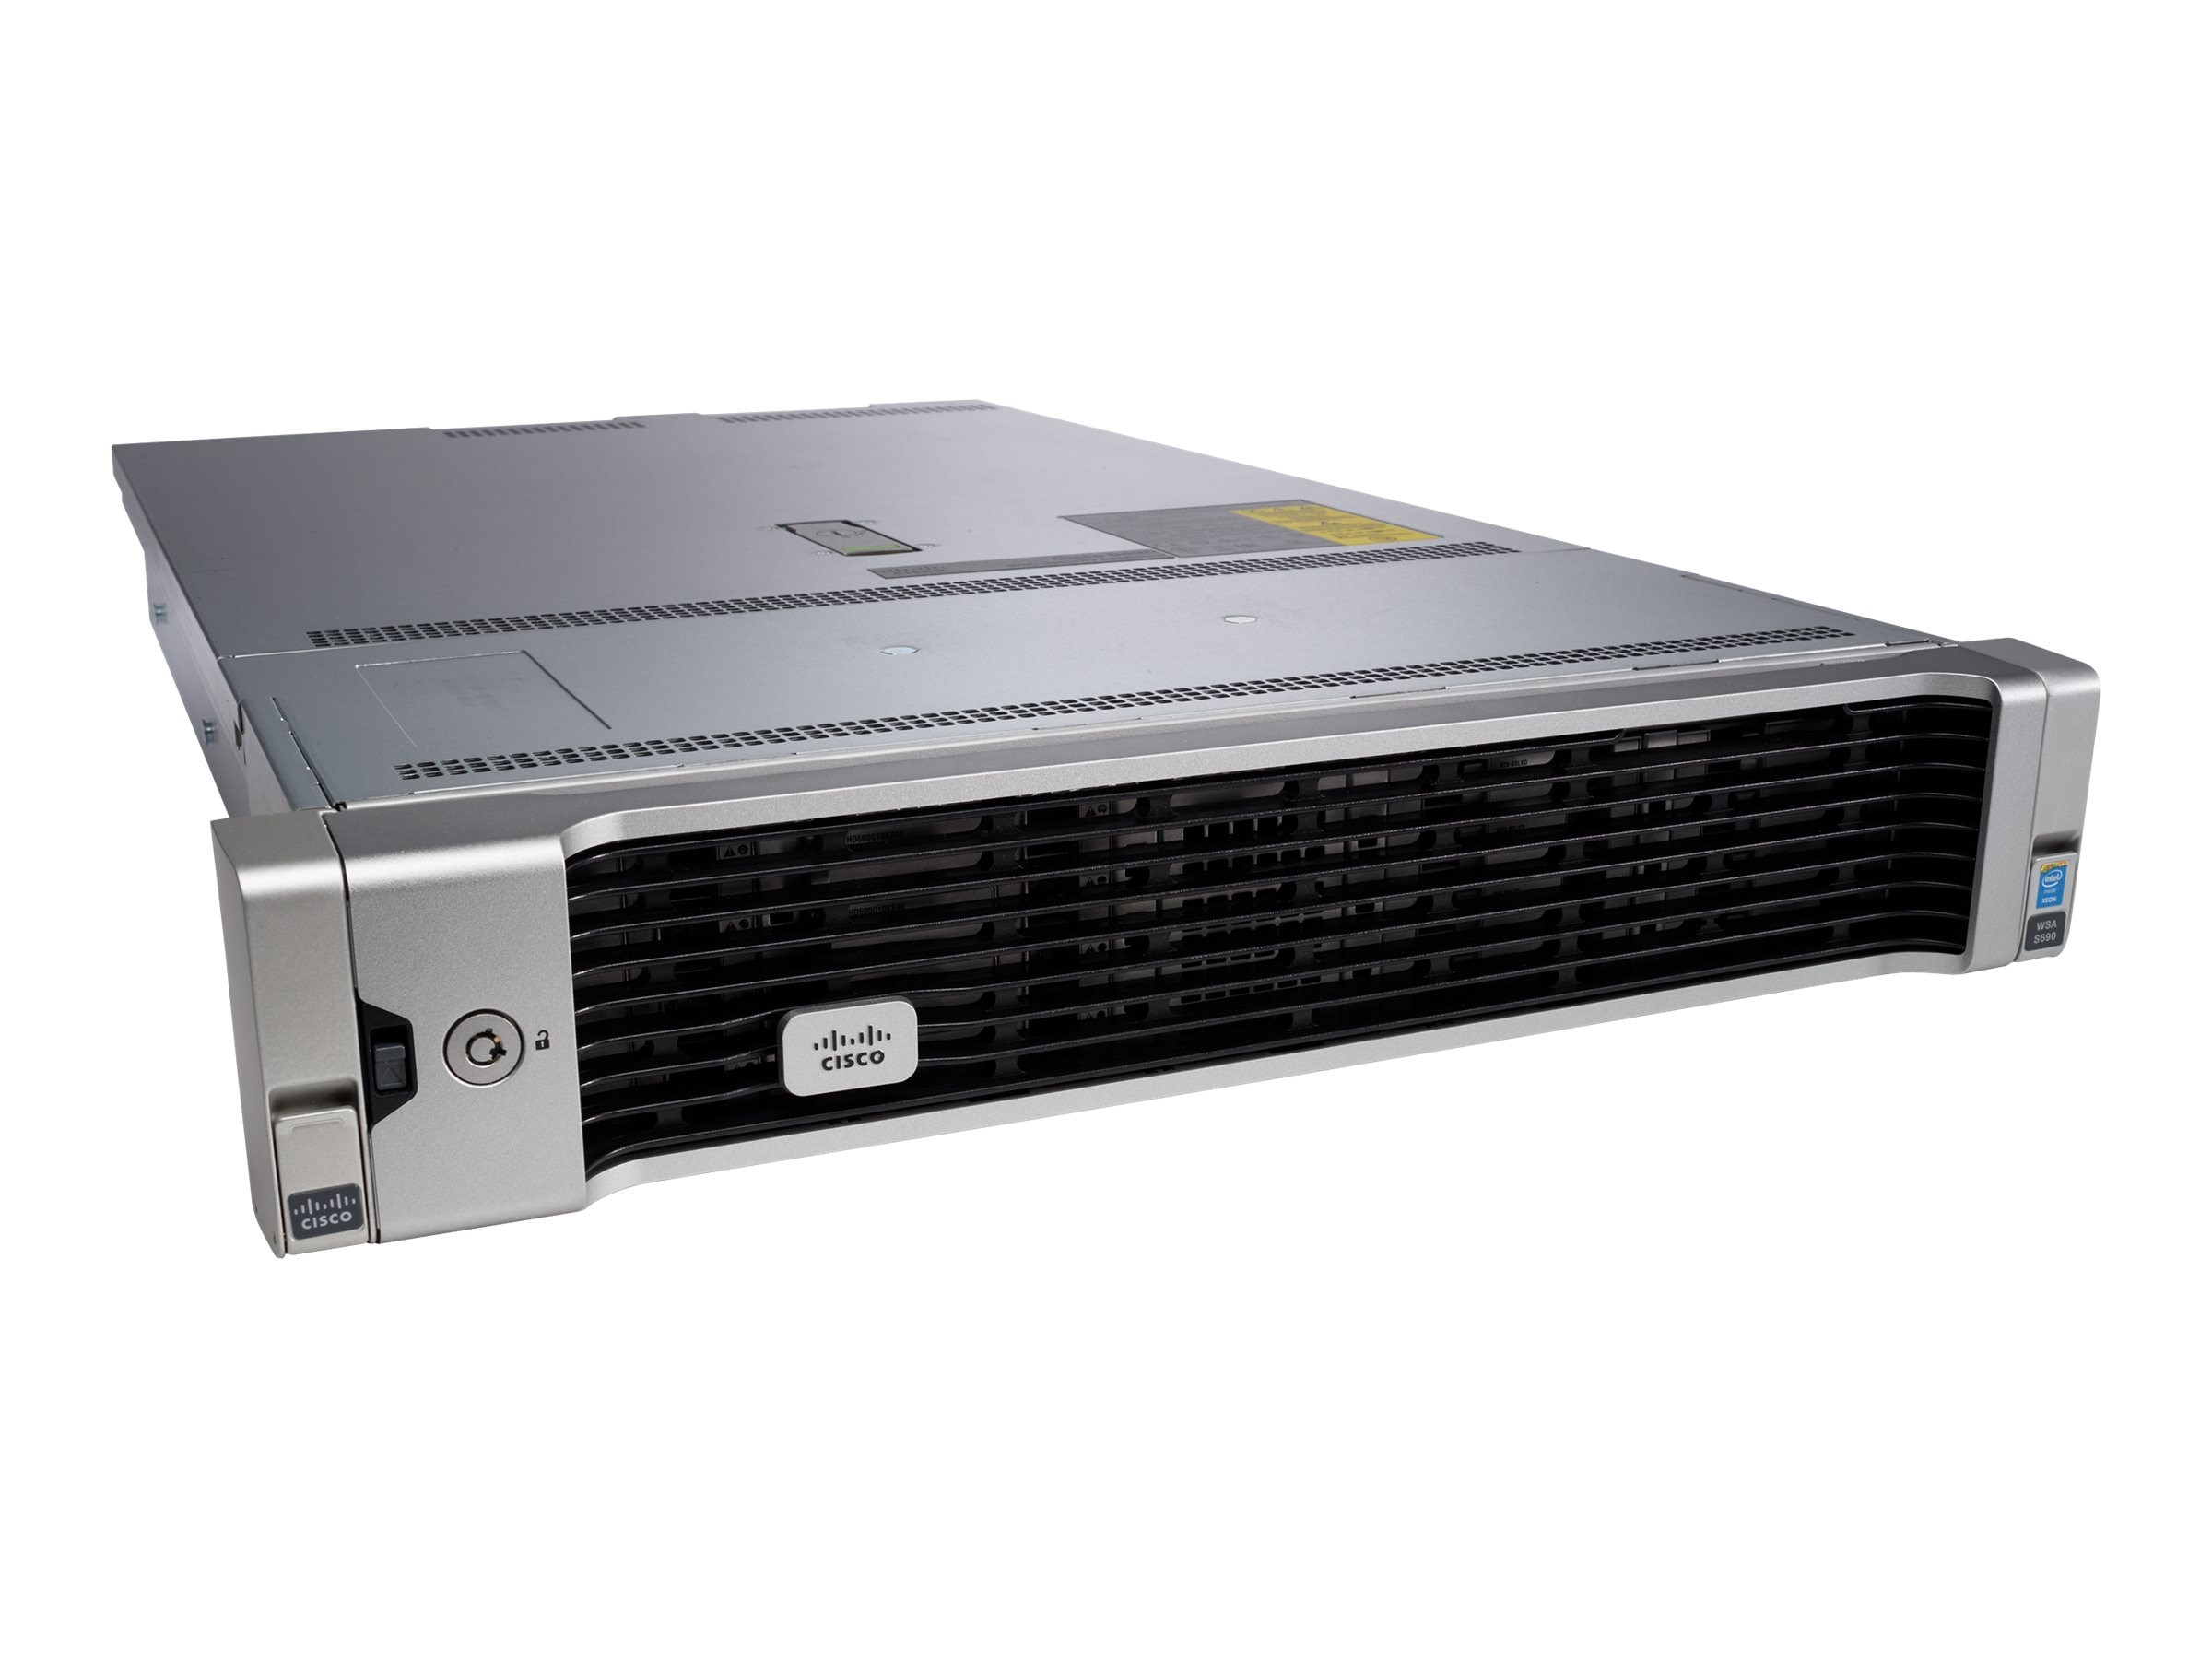 Cisco WSA-S690-10G-K9 Image 1